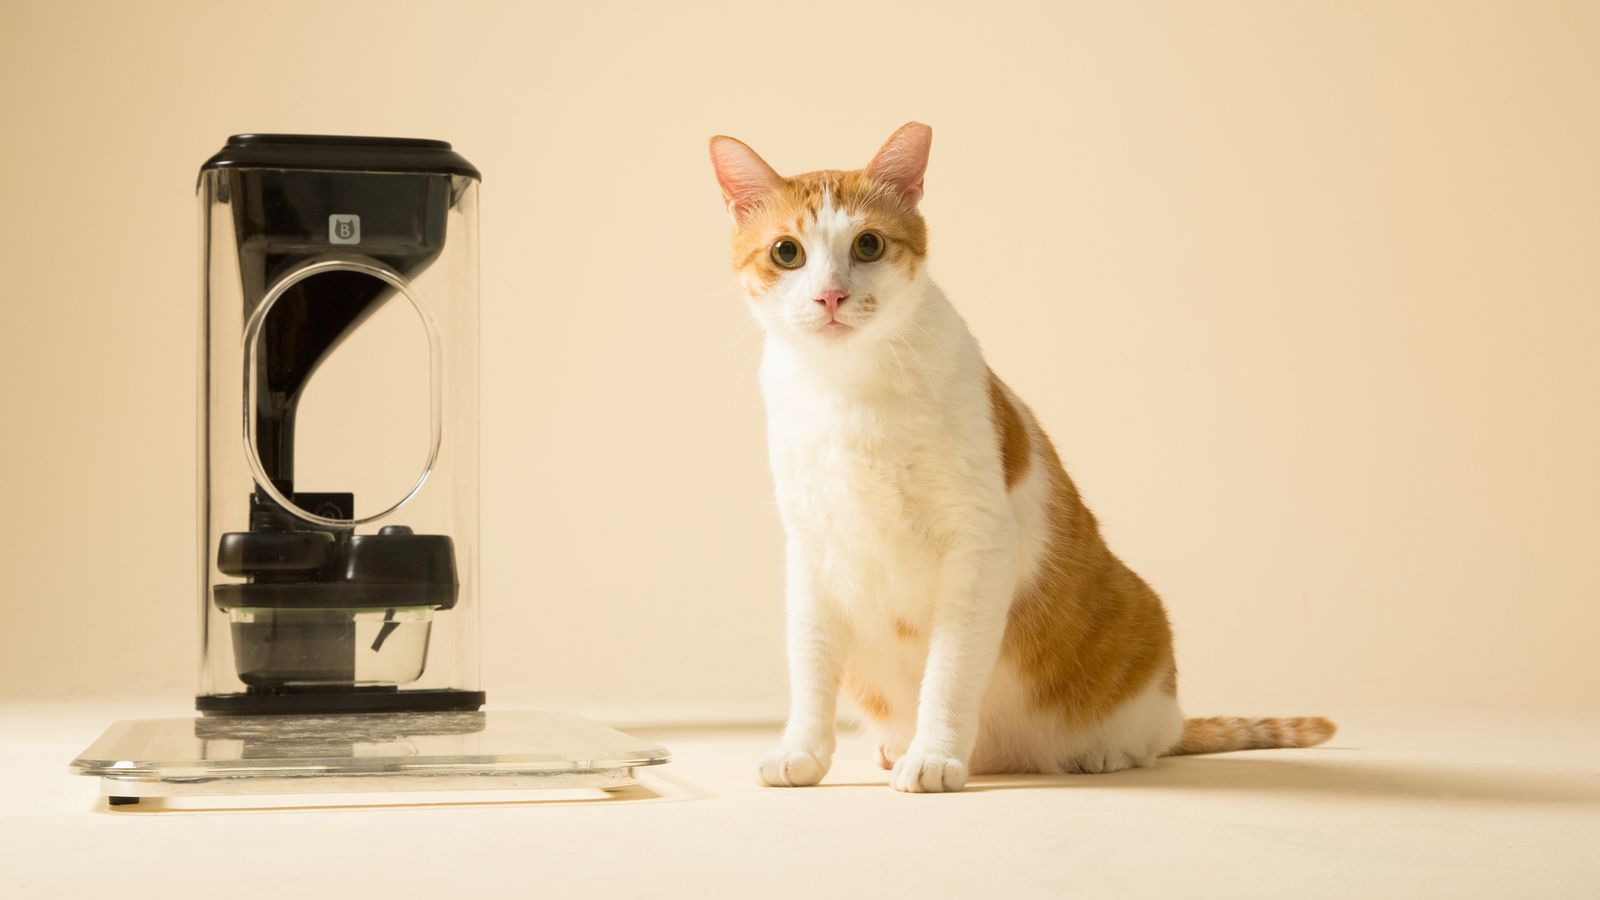 Feline Facial Recognition Will Make Your Cats Less Fat